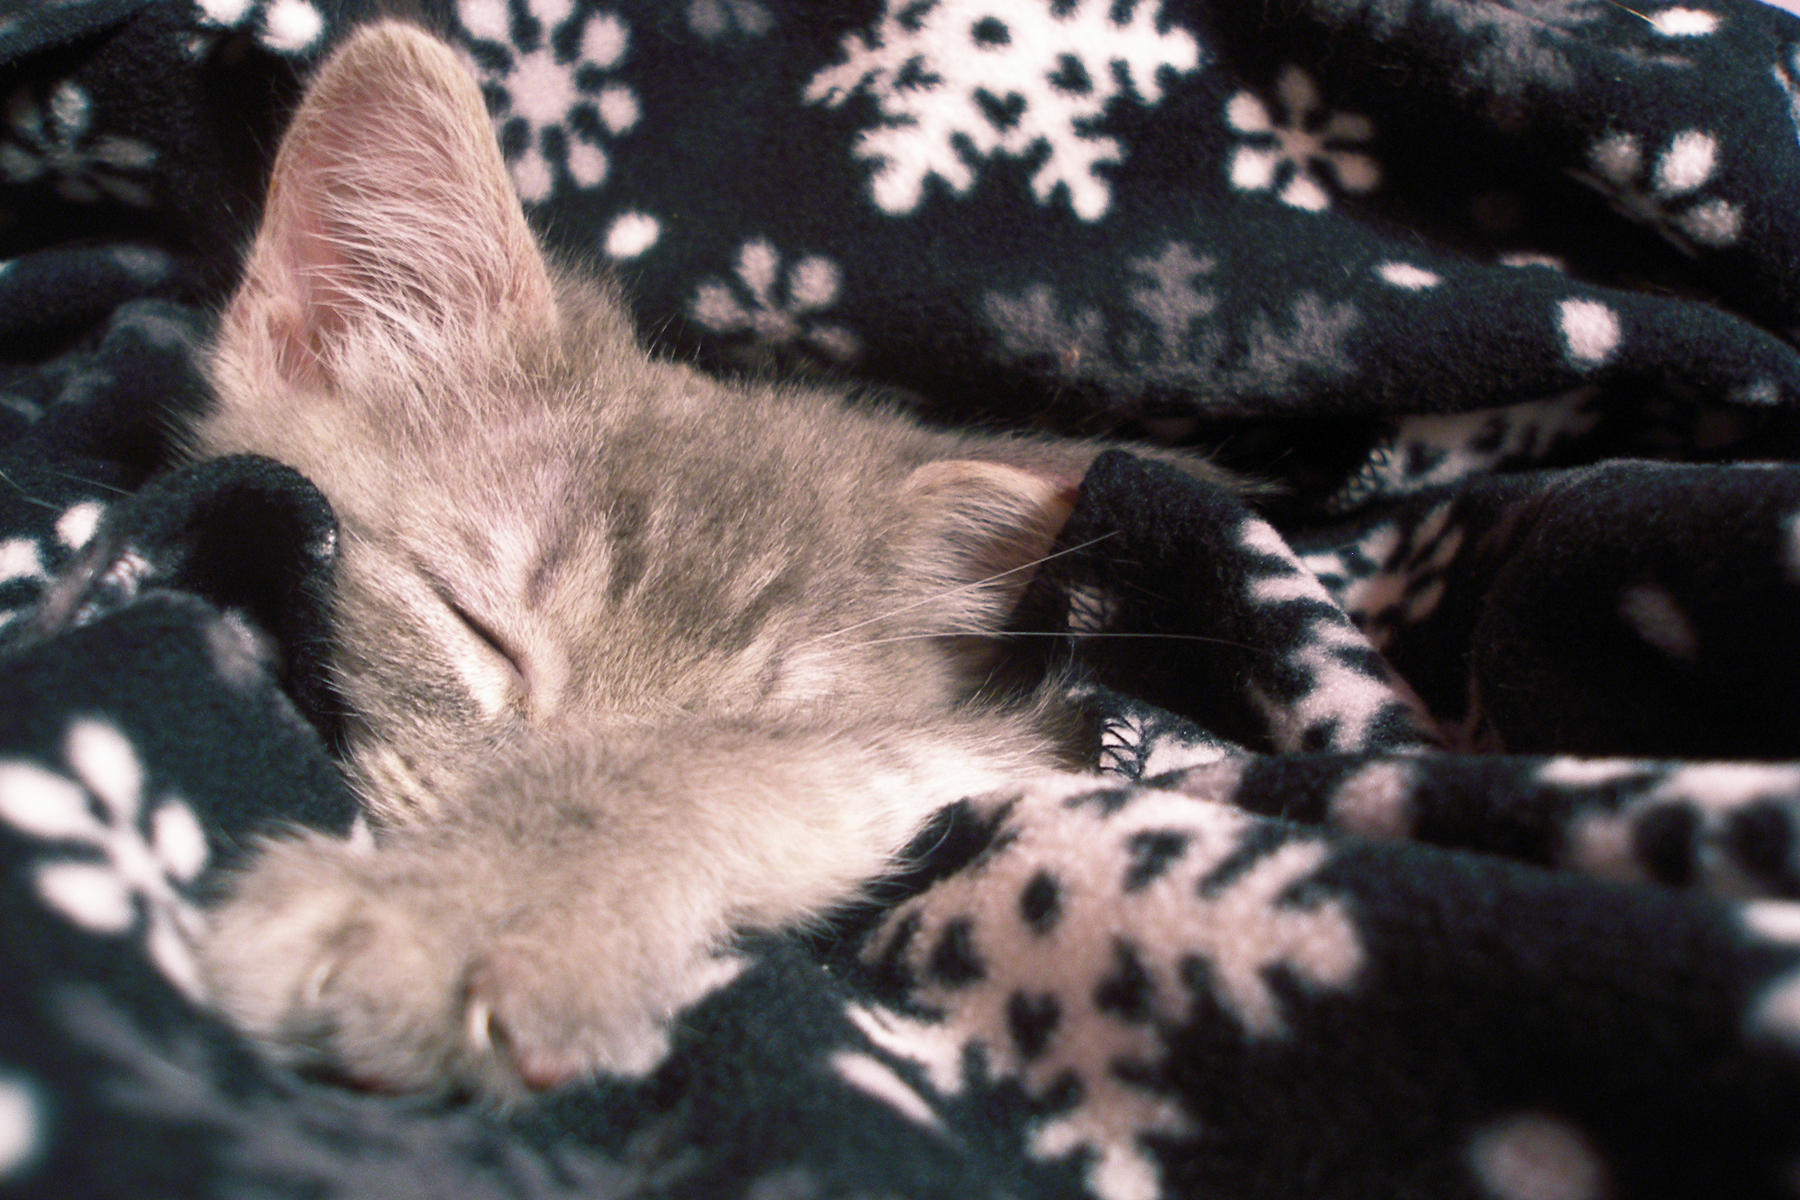 Cozy Winter Blanket Photo by meimmo